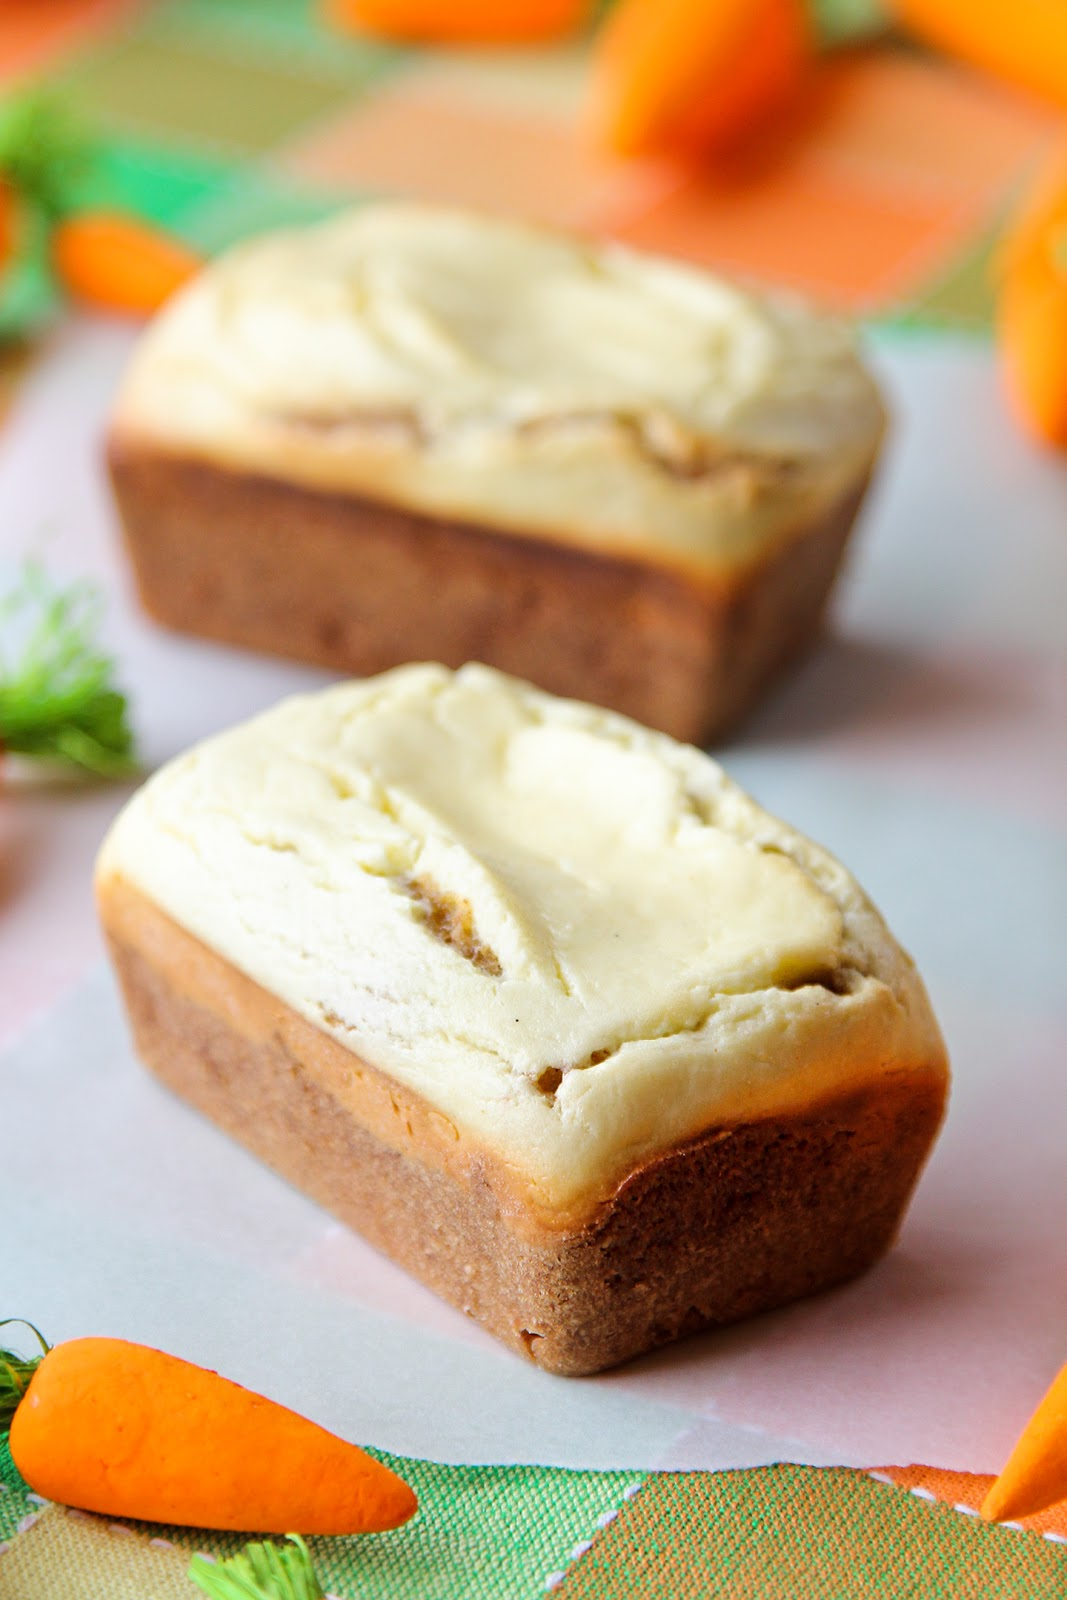 ... Made Simple: Mini Carrot Cake Loaves with Baked Cream Cheese Topping